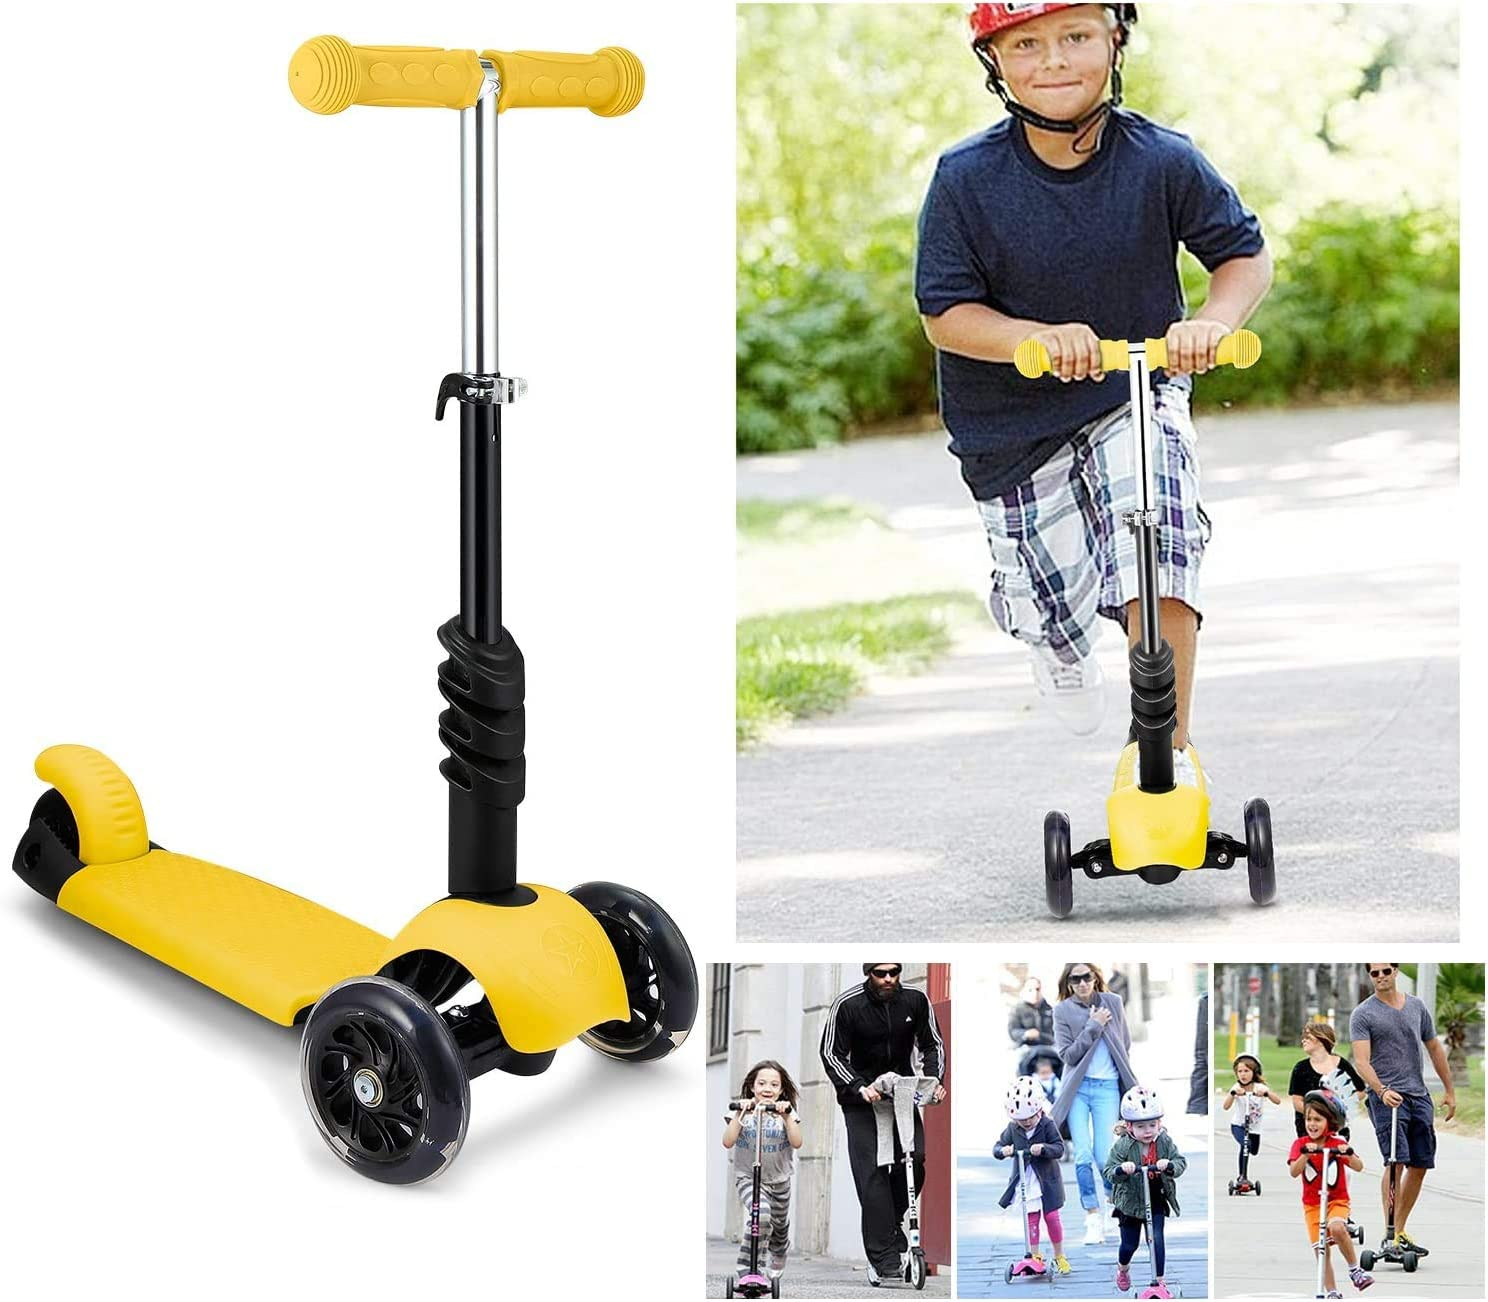 Shaofu Kids Scooter for Tddlers Girls or Boys 2 Years Old